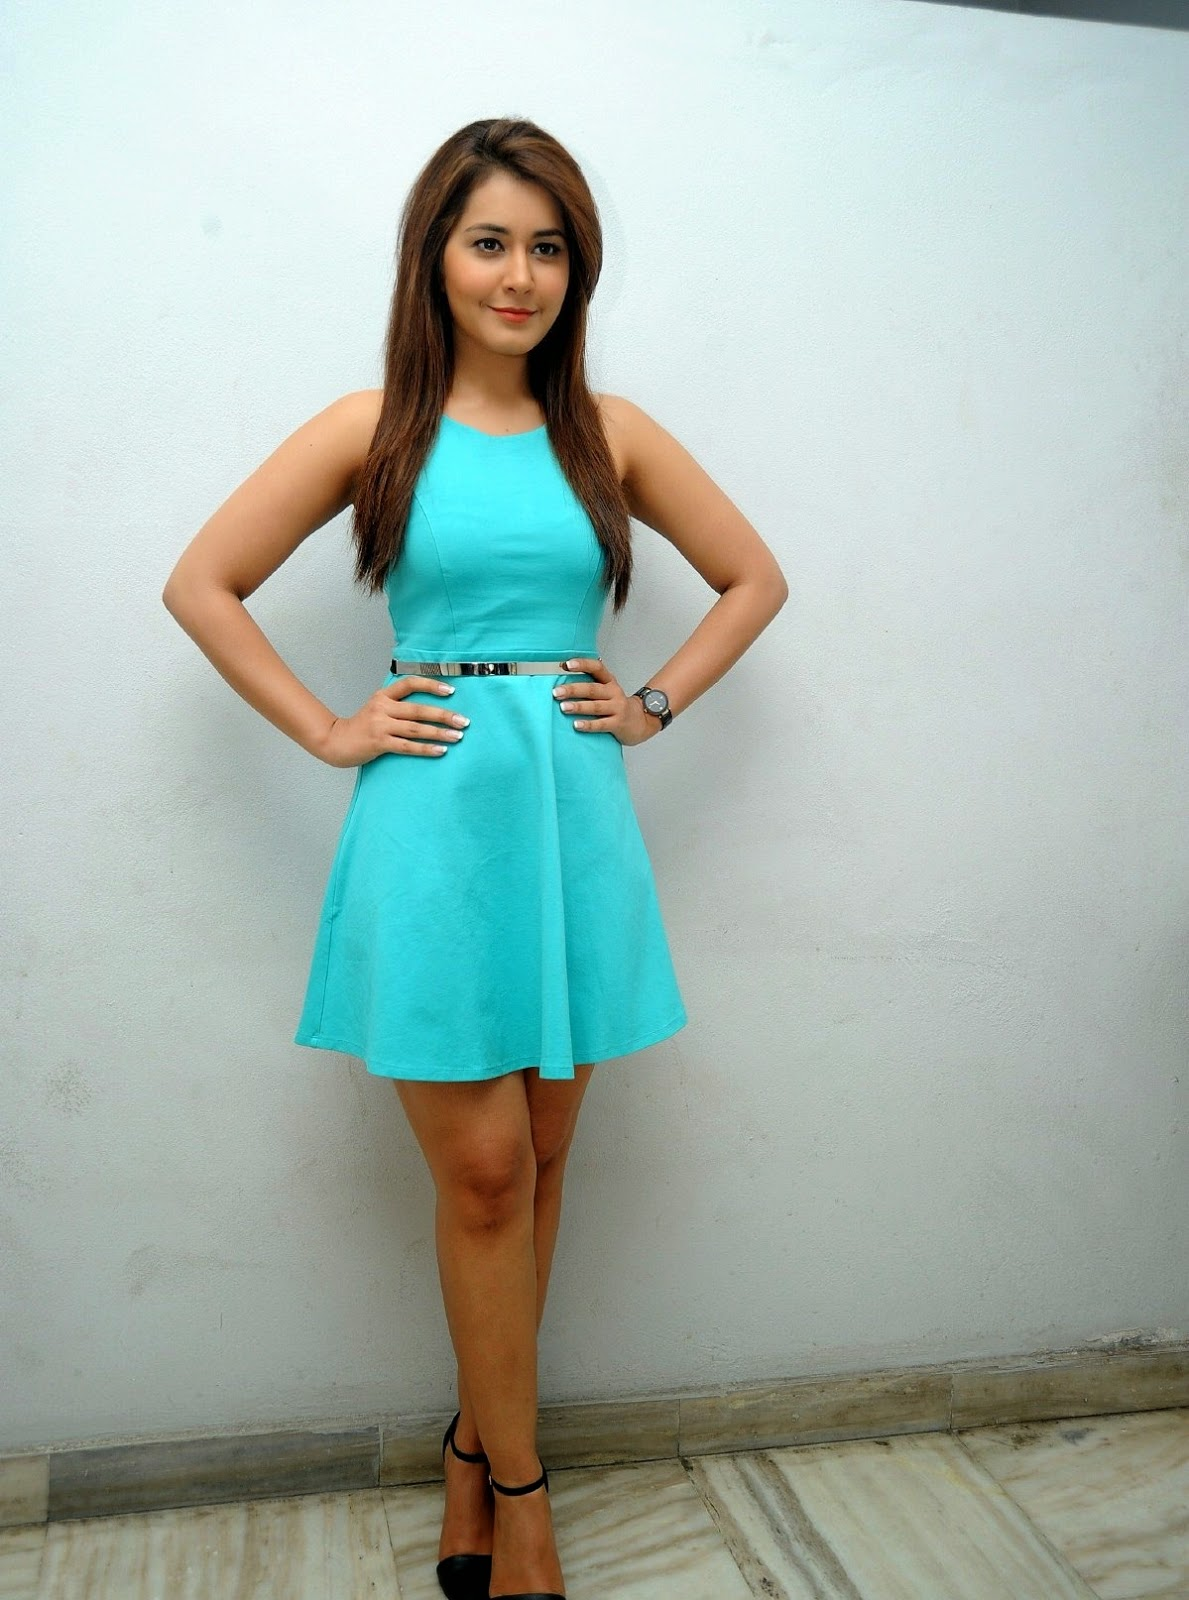 high quality bollywood celebrity pictures rashi khanna displays her